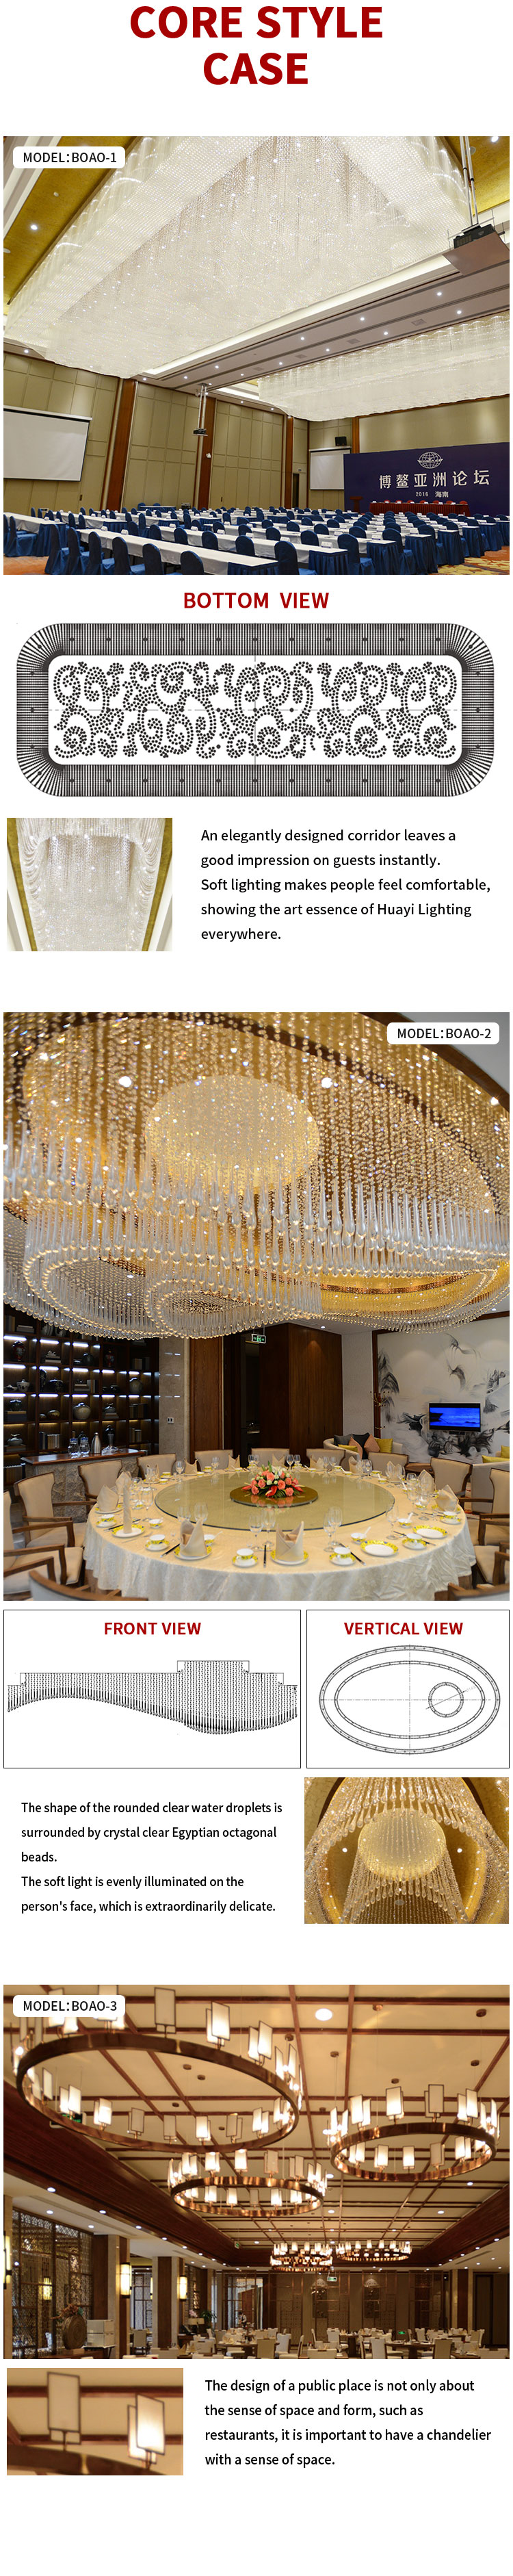 BOAO FORUM FOR ASIA DONGYU ISLAND HOTEL Capiz shell chandelier philippines crystal pendant ceiling light